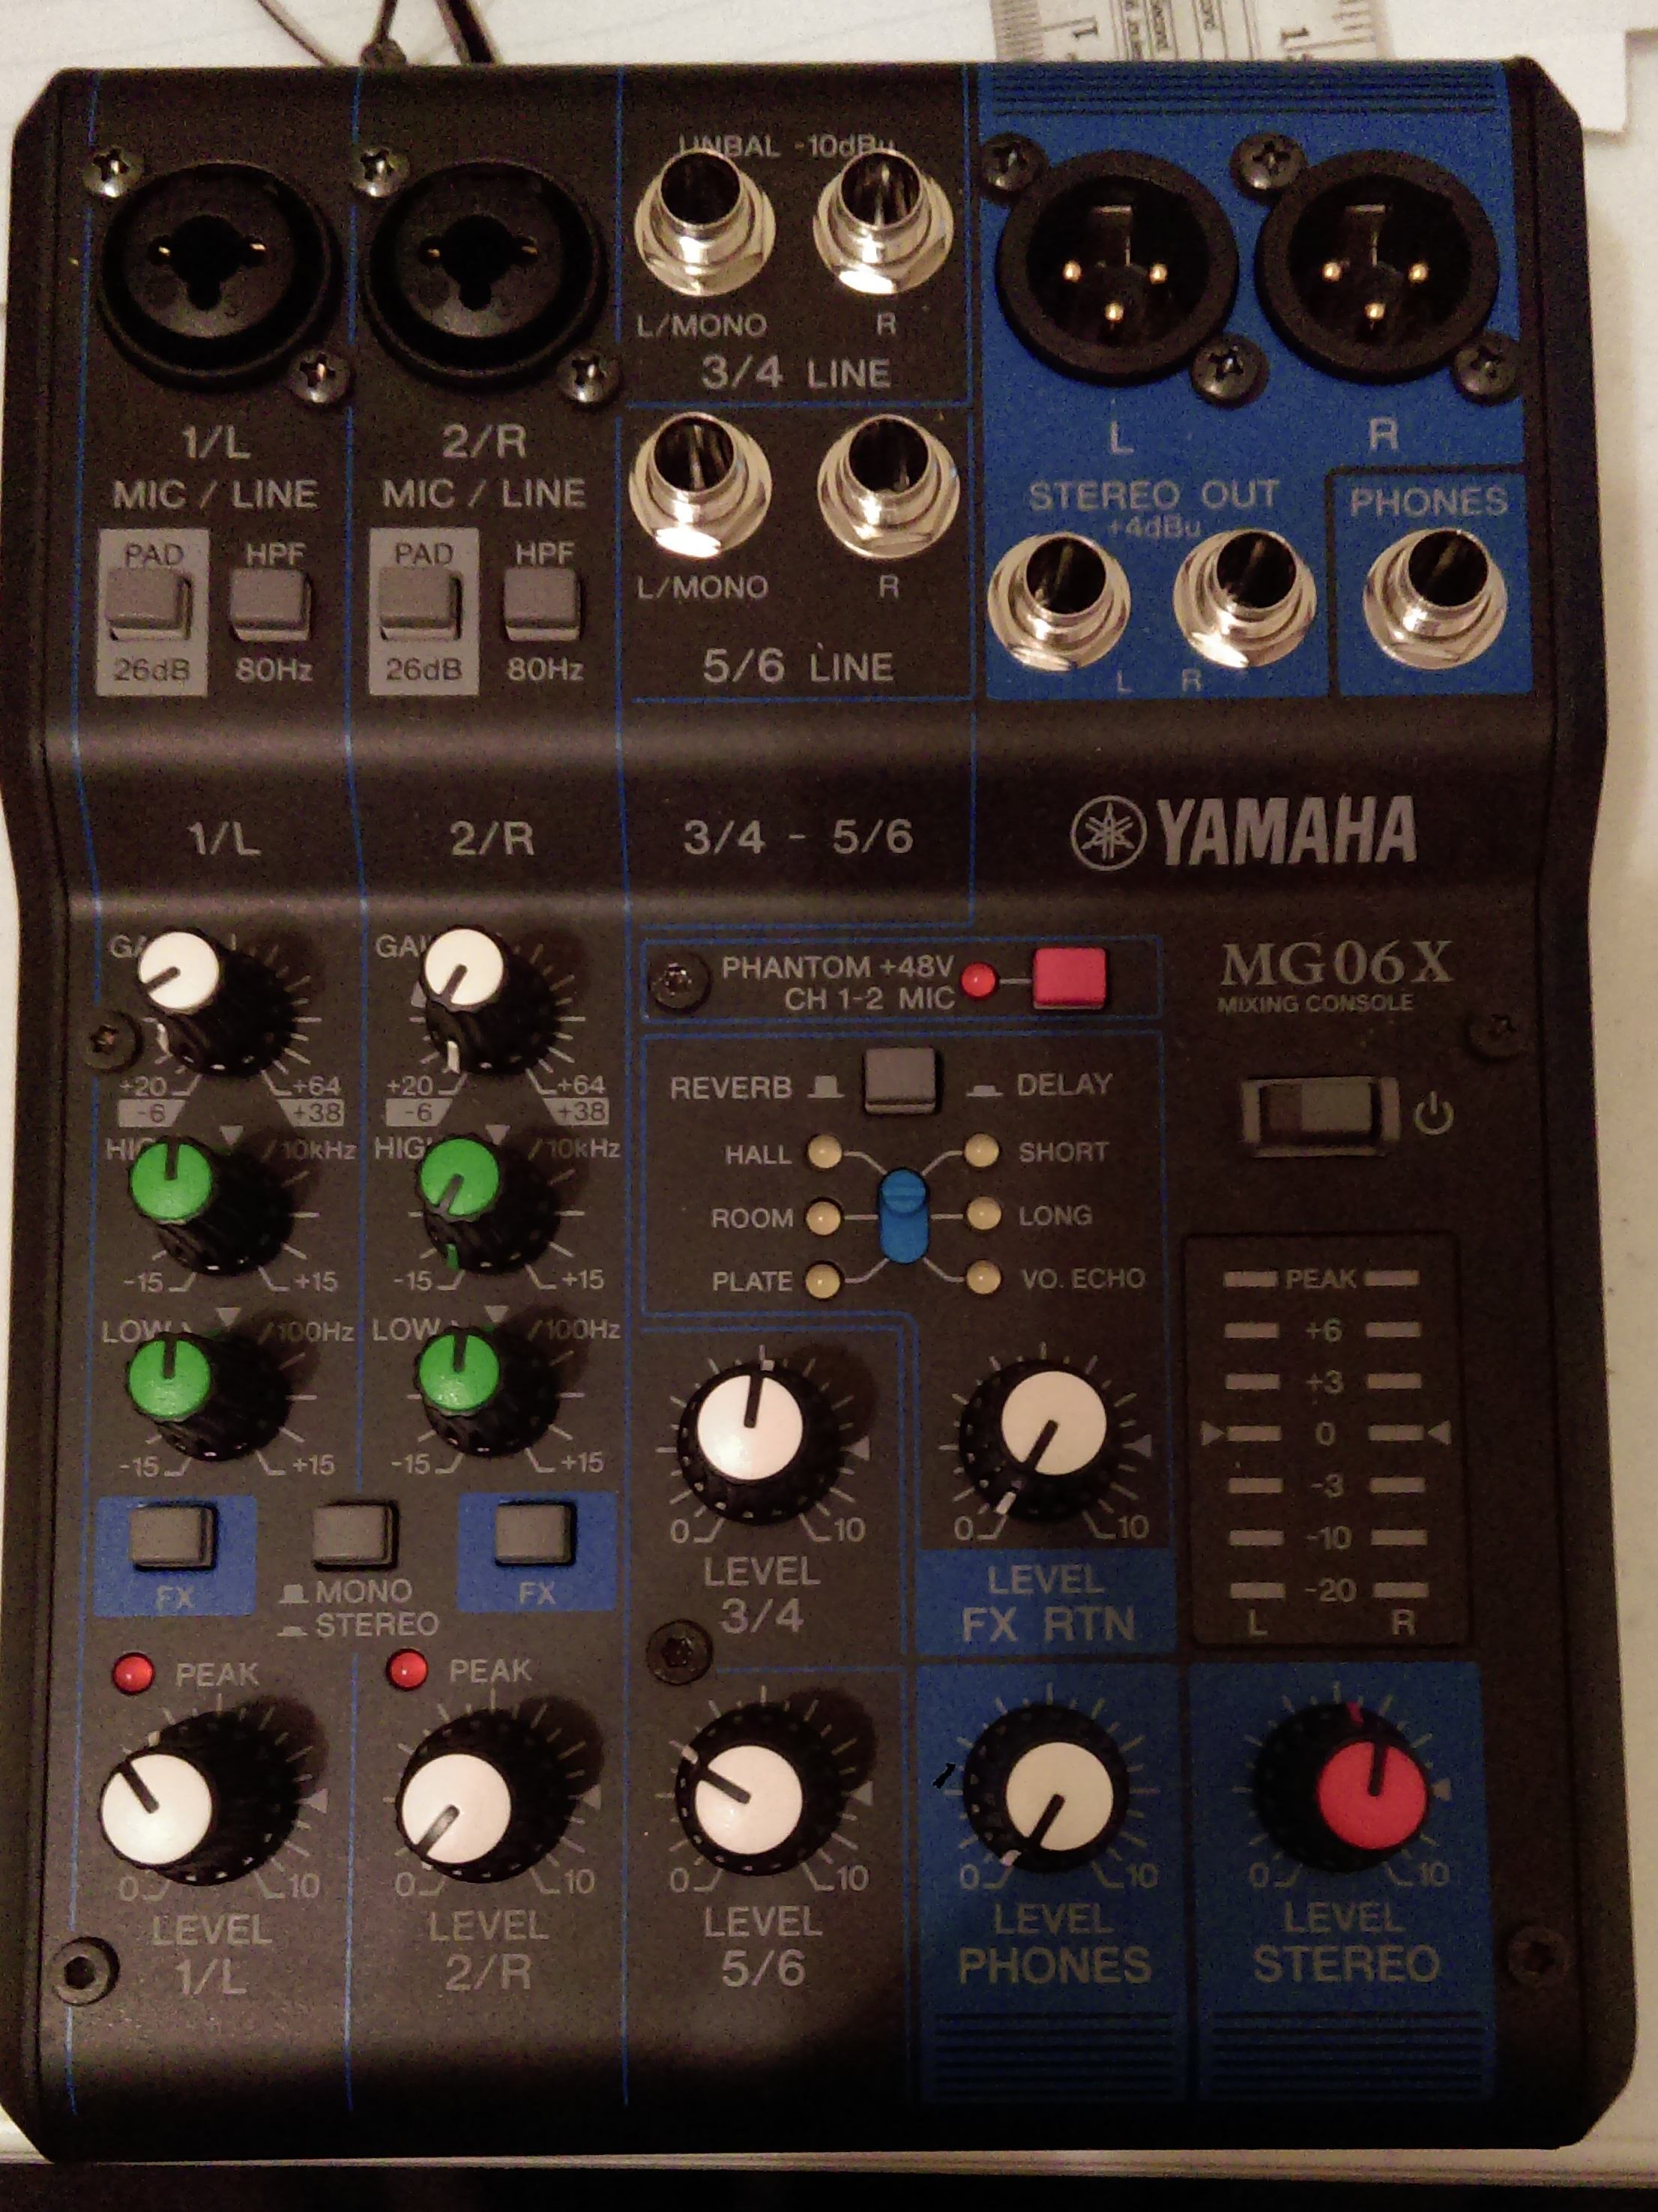 Mini Mixer Recommendations Other Gear Elektronauts Had One Of Those Tiny Behringers Once Cant Say I Was Particularly Impressed With It Another Brand Worth Looking At Is Rolls Looks They Do Some Fairly